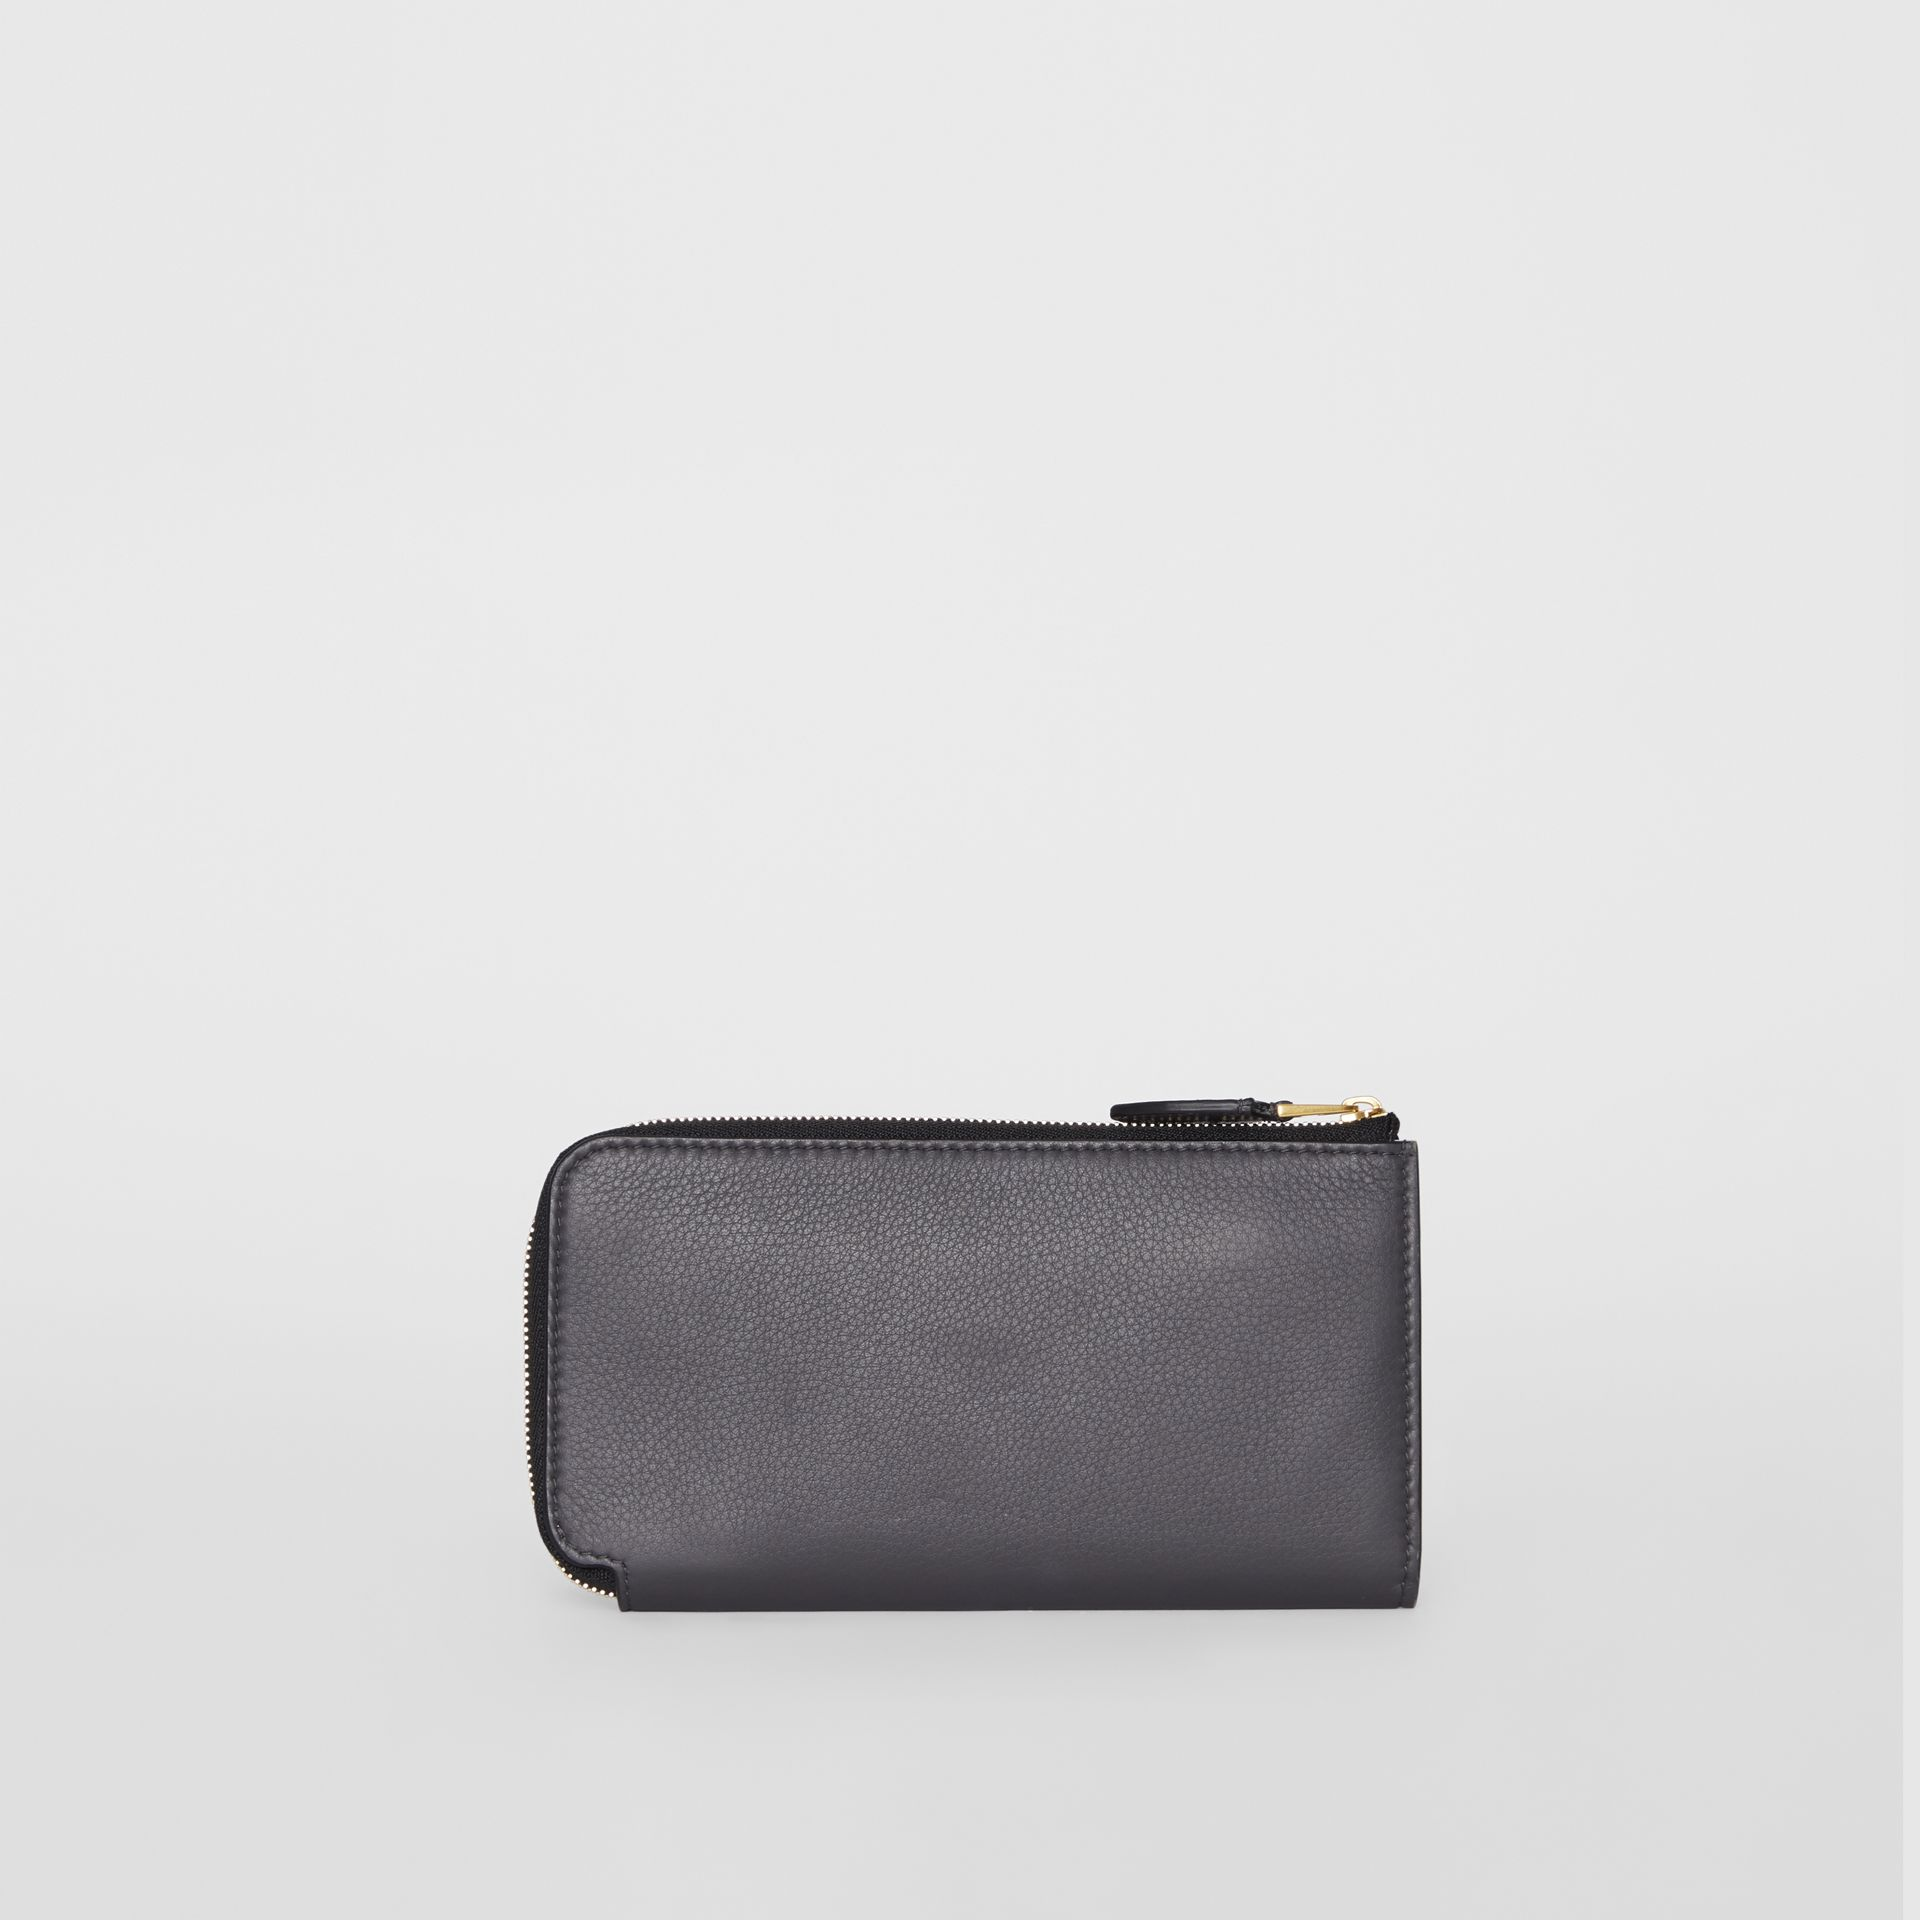 Two-tone Leather Ziparound Wallet and Coin Case in Charcoal Grey - Women | Burberry United Kingdom - gallery image 6